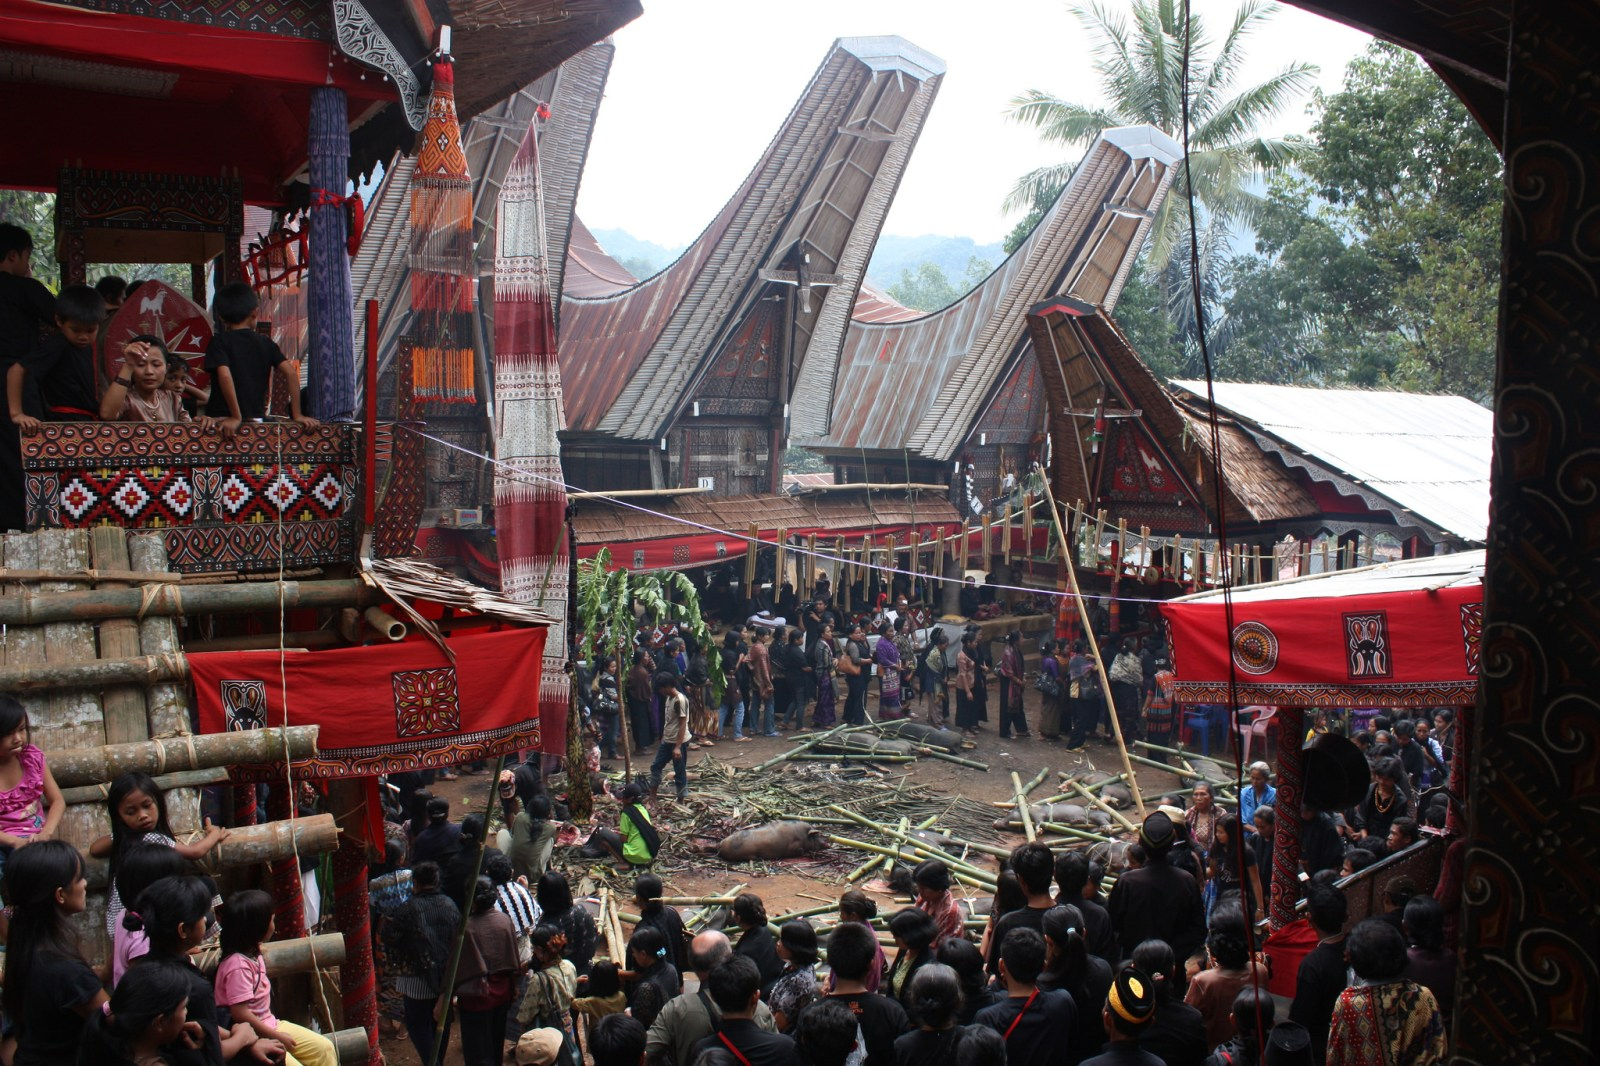 A Torajan funeral can last for weeks! Definitely one of the unique and one of a kind offbeat Indonesia destinations and activities to add to your to-do list